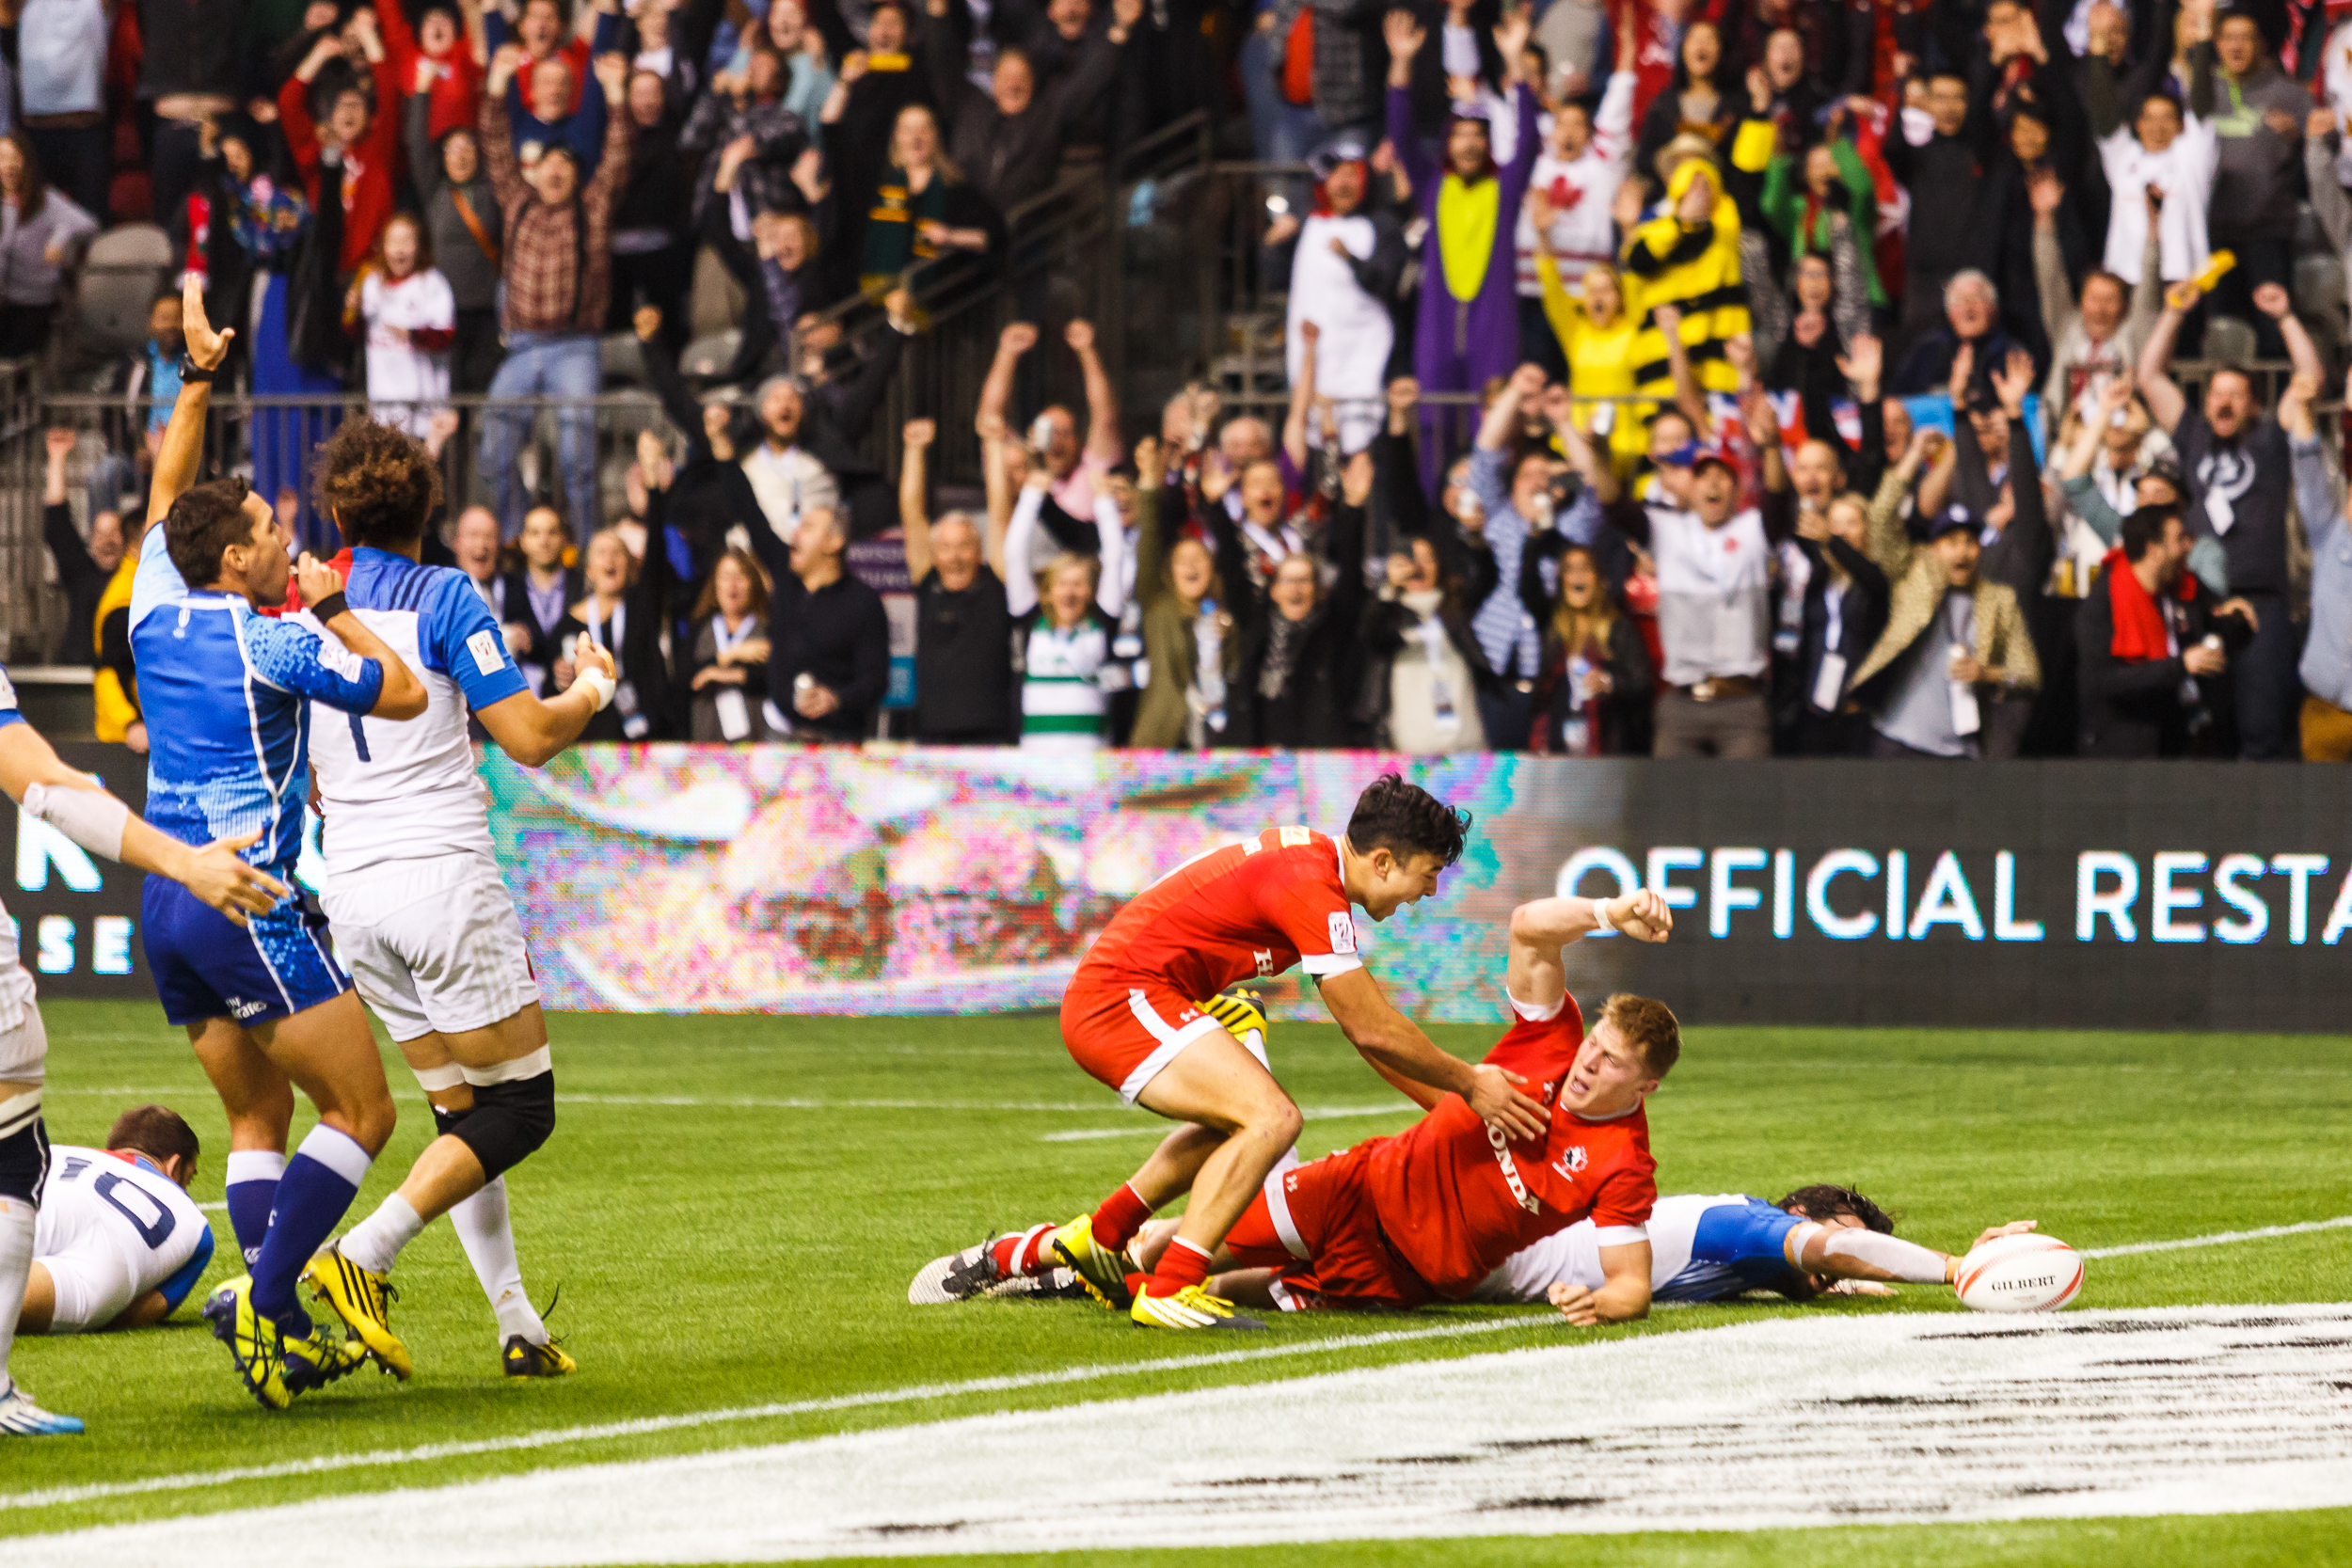 Canada-Rugby-Sevens-photo-49.jpg